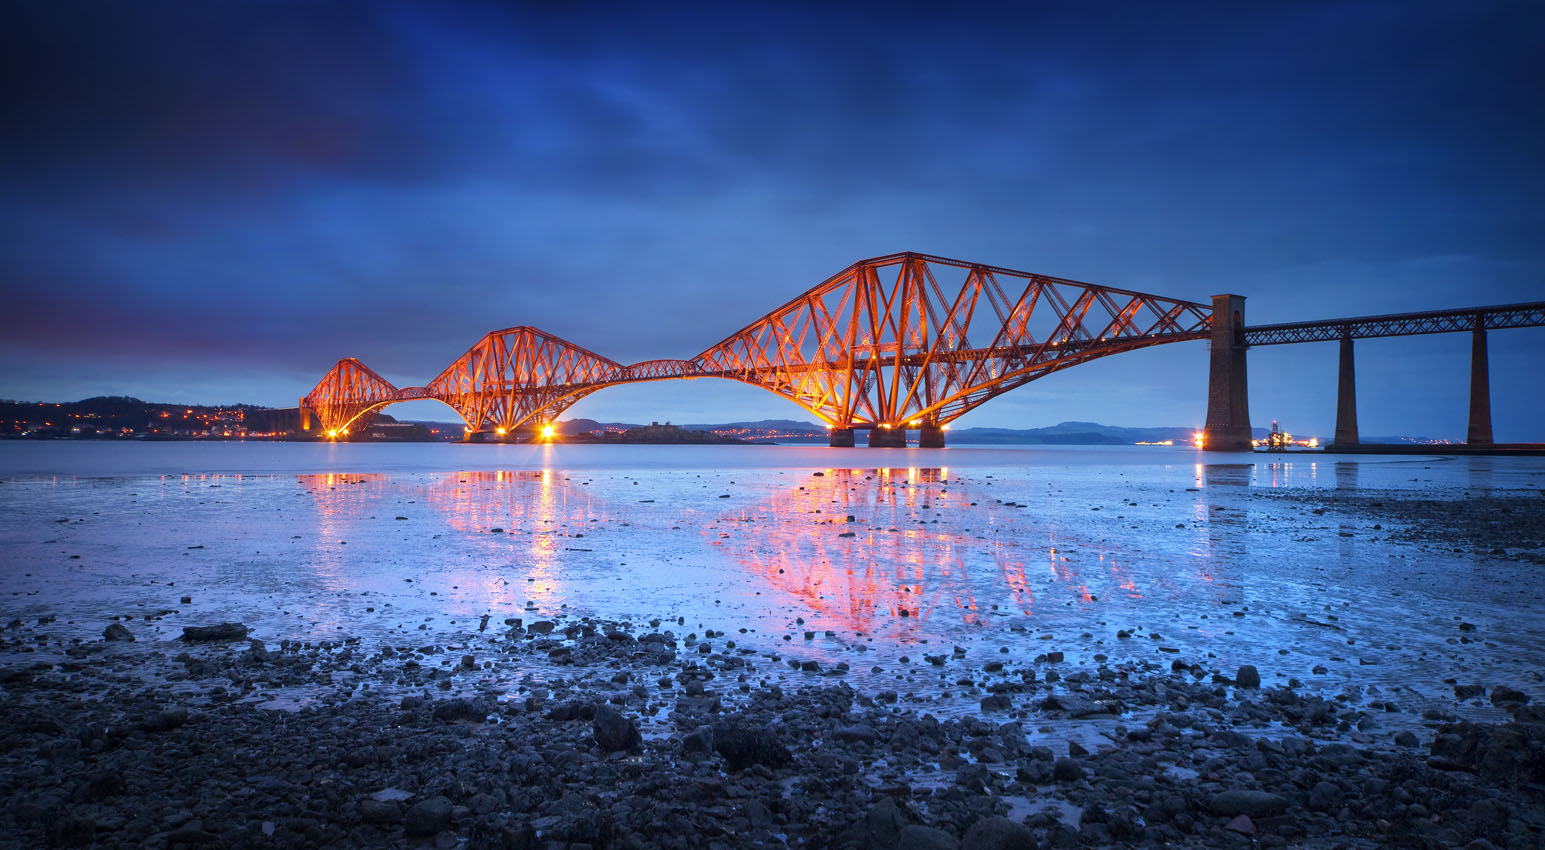 Edinburgh Forth Rail Bridge